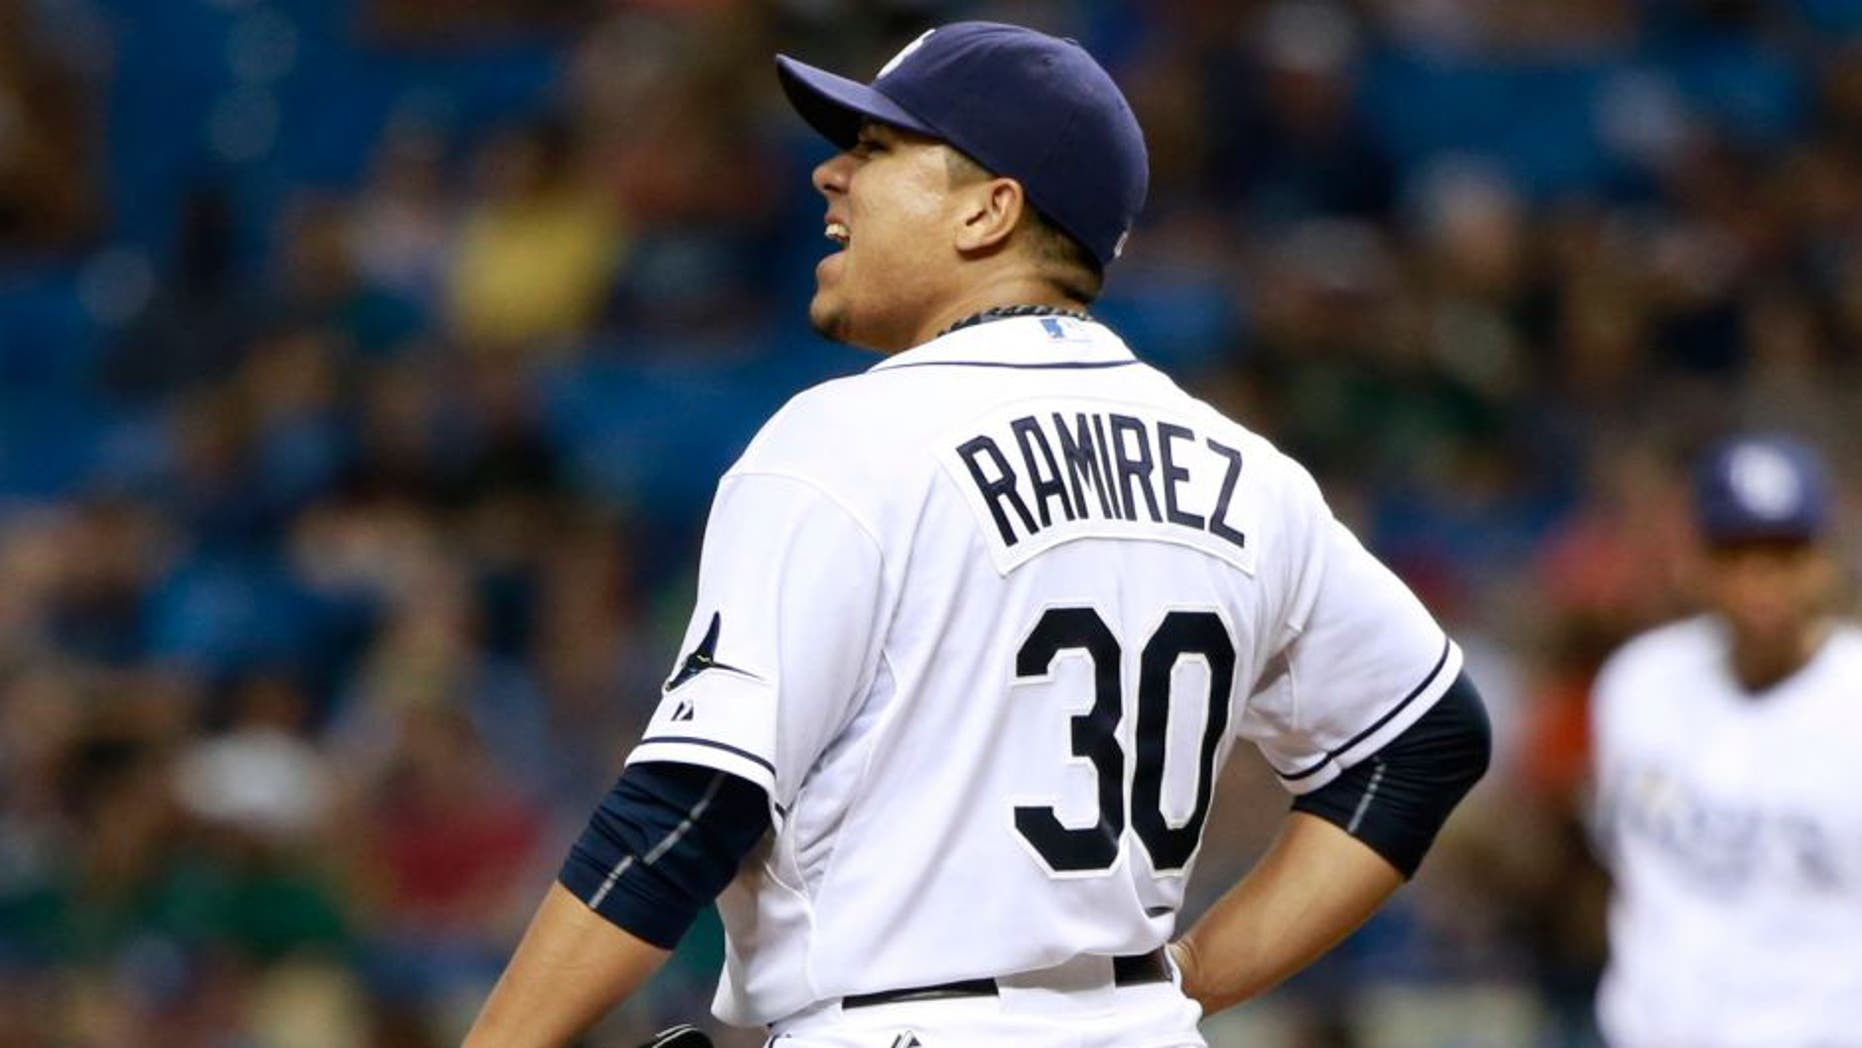 Jul 25, 2015; St. Petersburg, FL, USA; Tampa Bay Rays starting pitcher Erasmo Ramirez (30) reacts after giving up a grand slam during the third inning against the Tampa Bay Rays at Tropicana Field. Mandatory Credit: Kim Klement-USA TODAY Sports